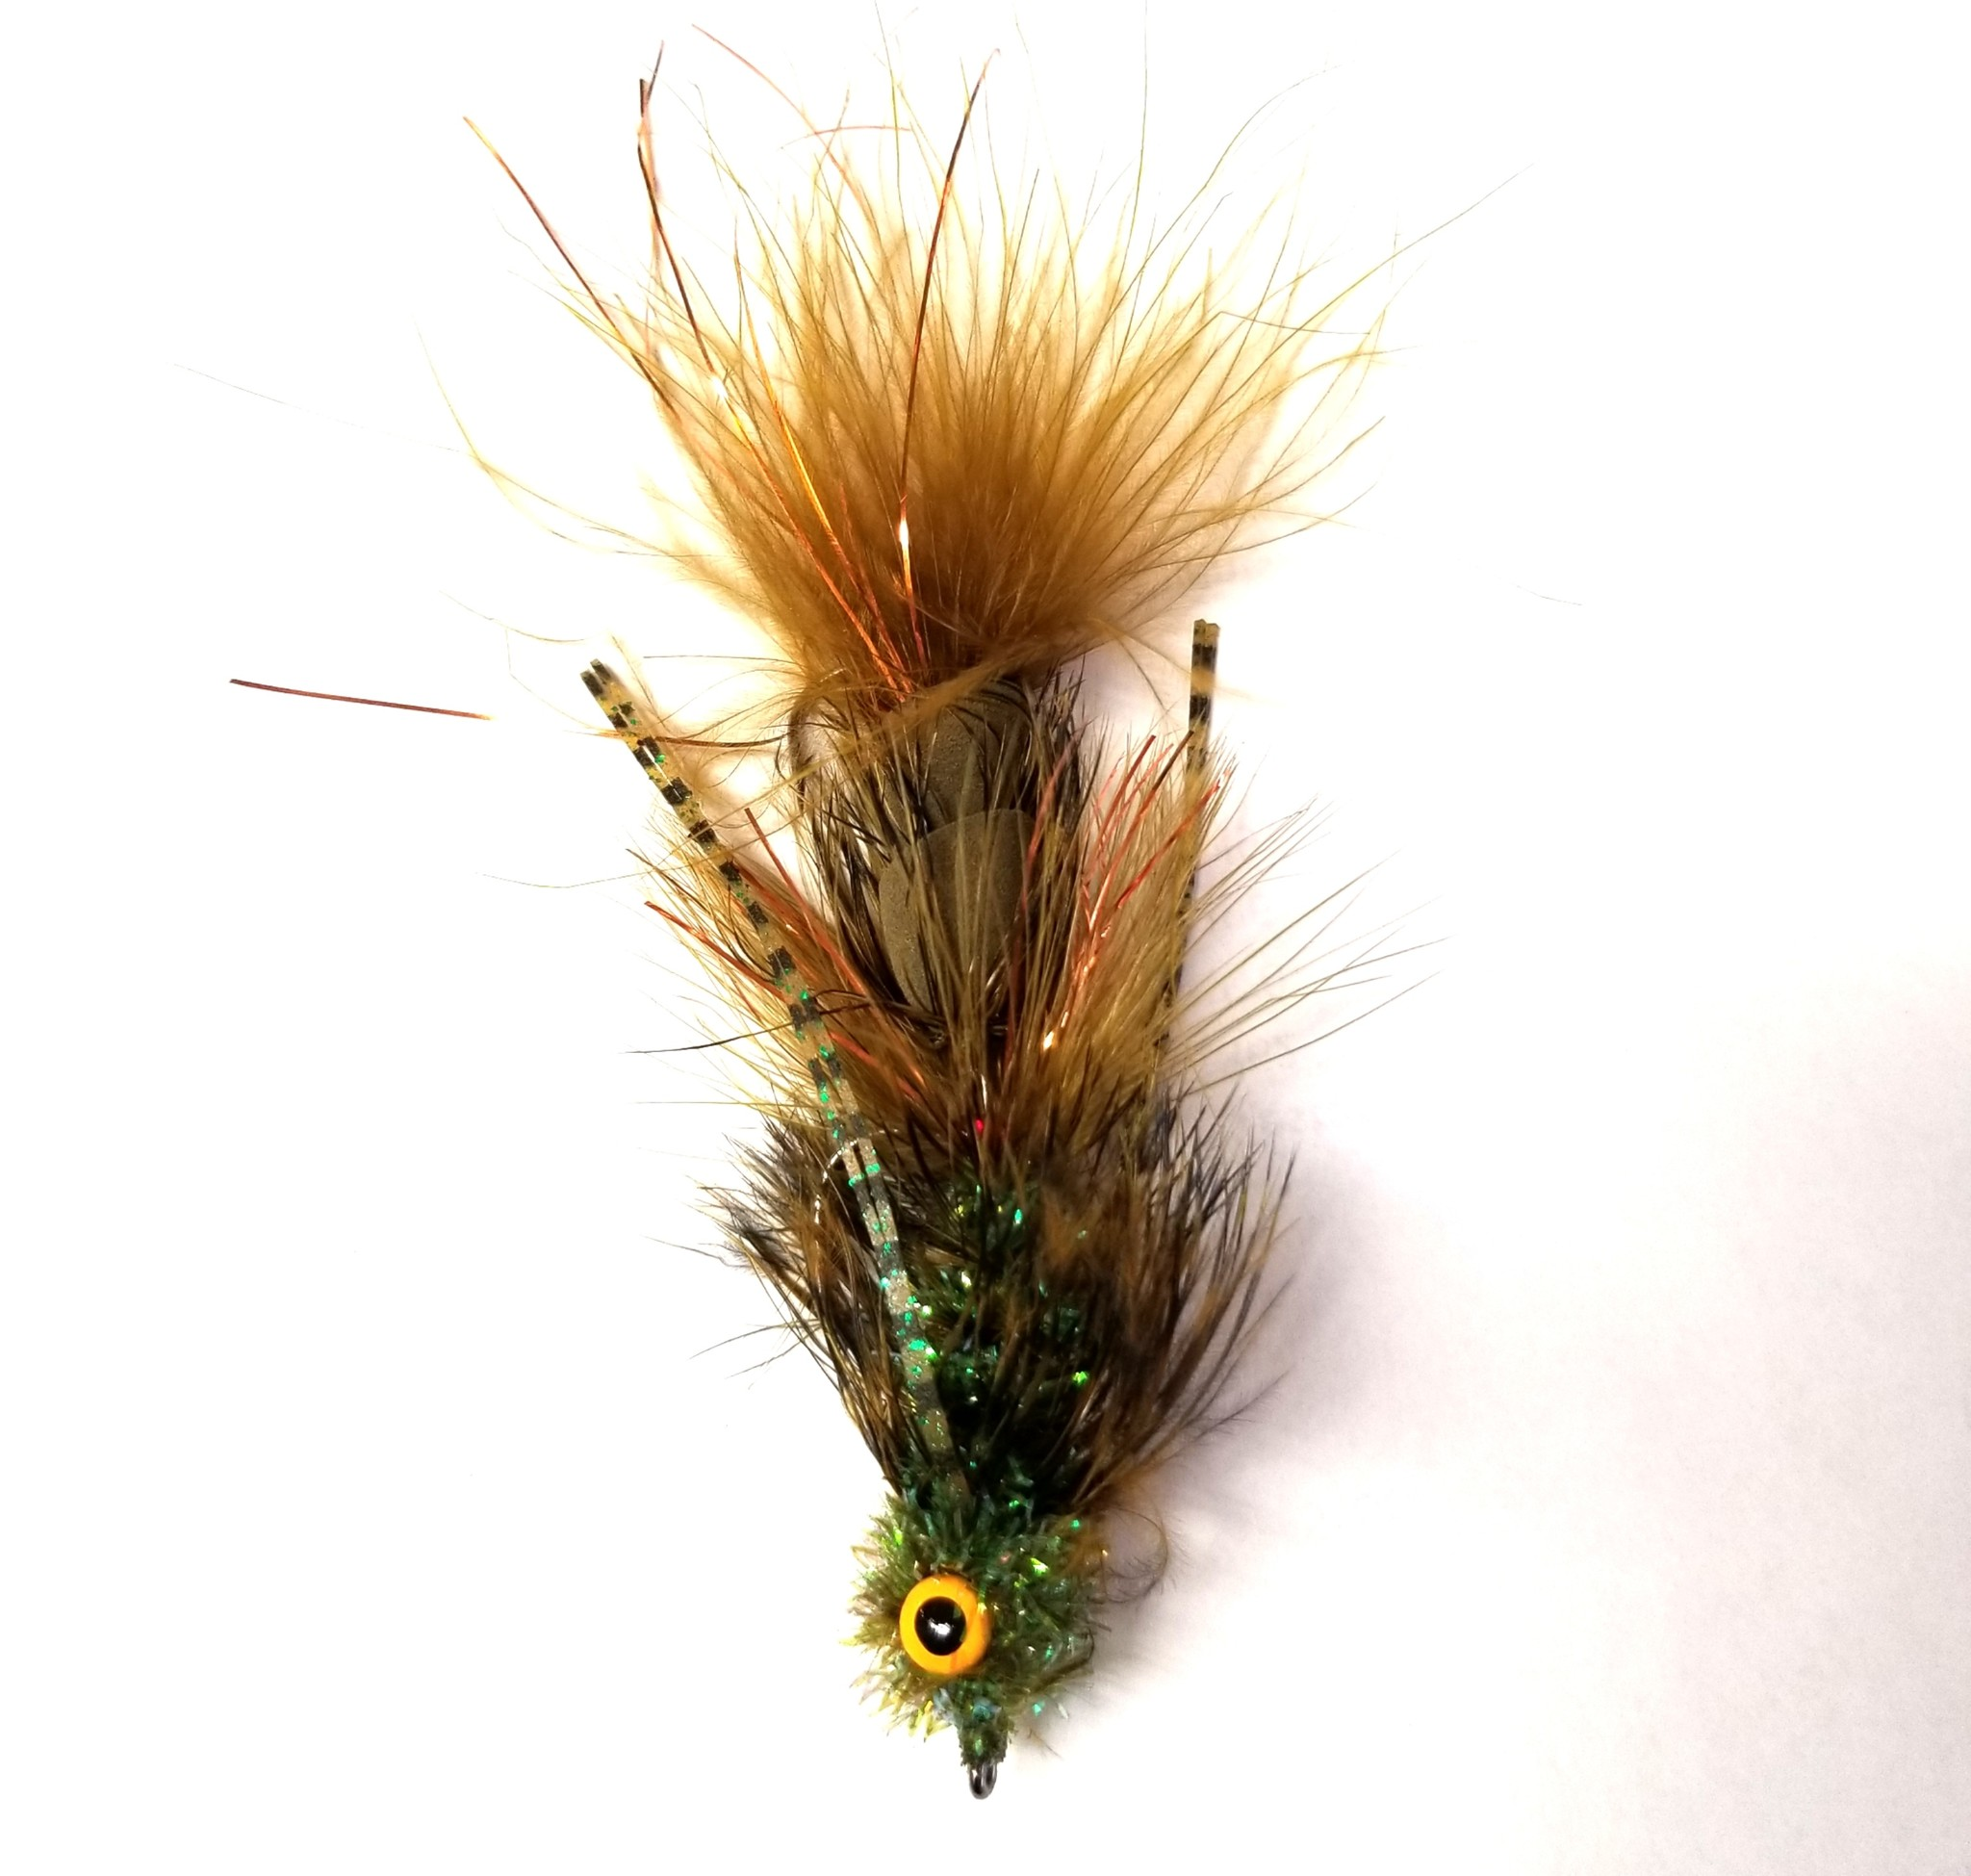 Montana Fly Company Galloup's Tips Up Olive